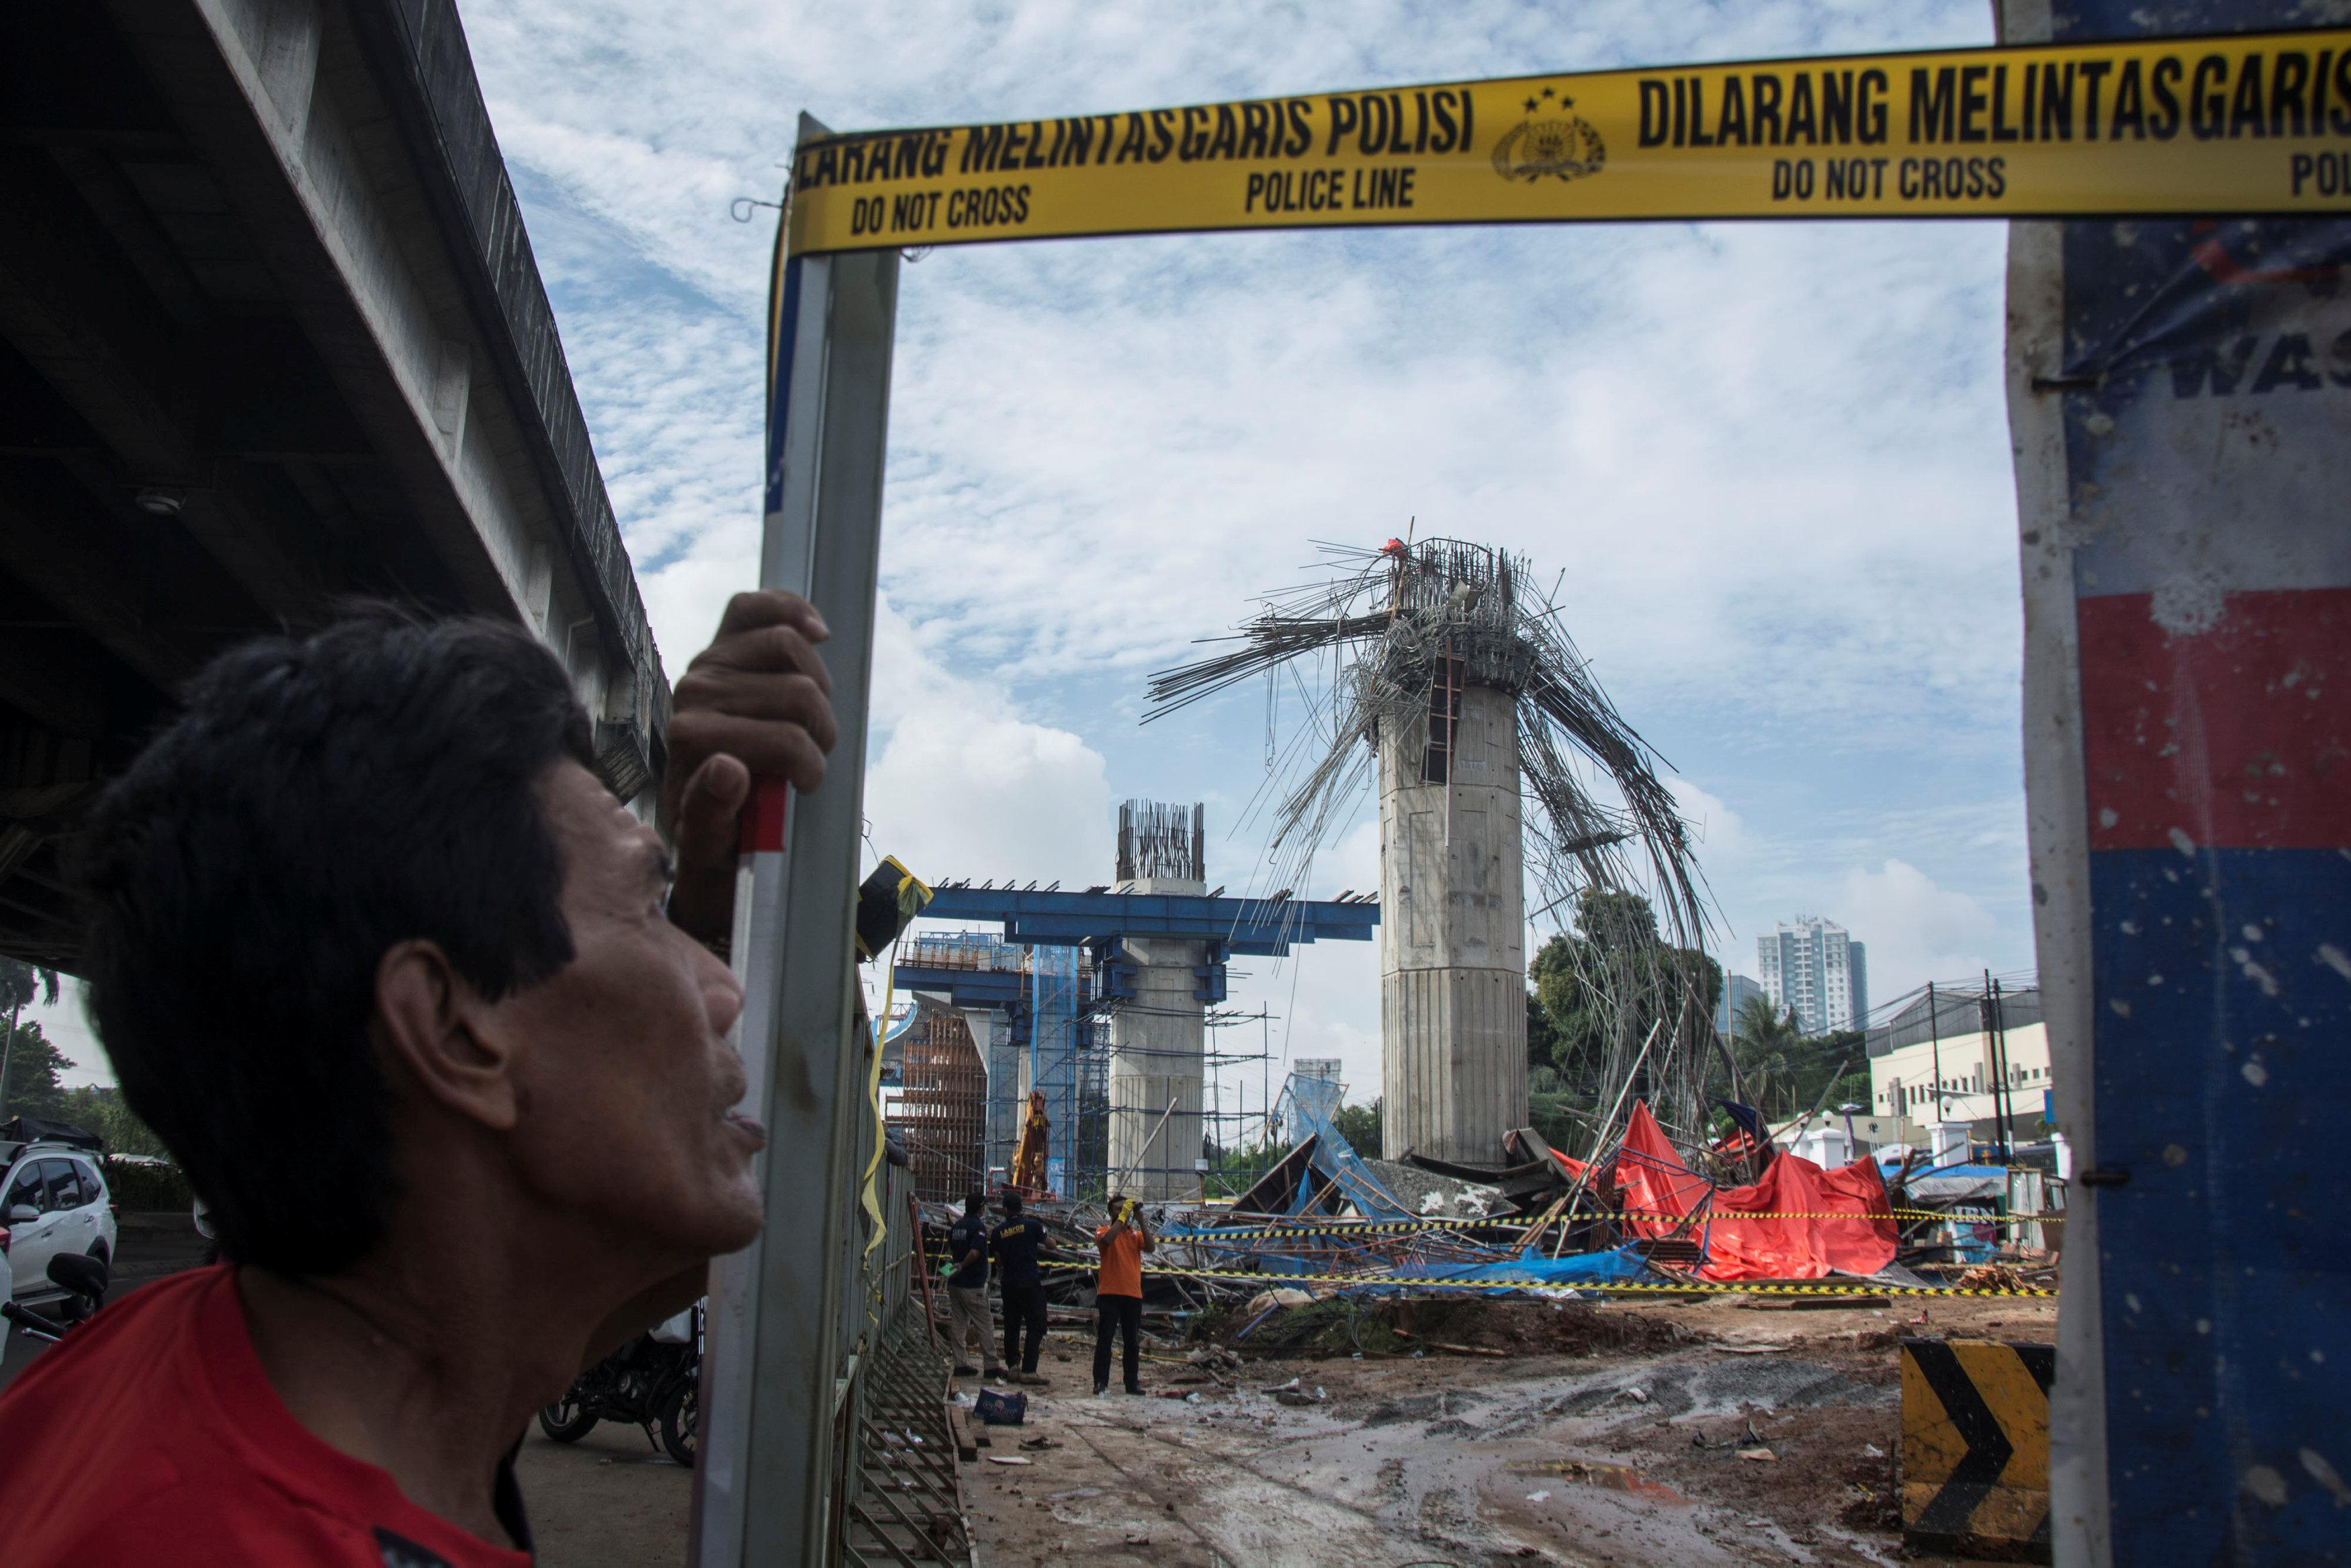 A man stands near a collapsed girder pole on the construction site of the Bekasi-Cawang toll overpass in Jakarta, Indonesia February 20, 2018 in this photo taken by Antara Foto.  Antara Foto/Aprillio Akbar/ via